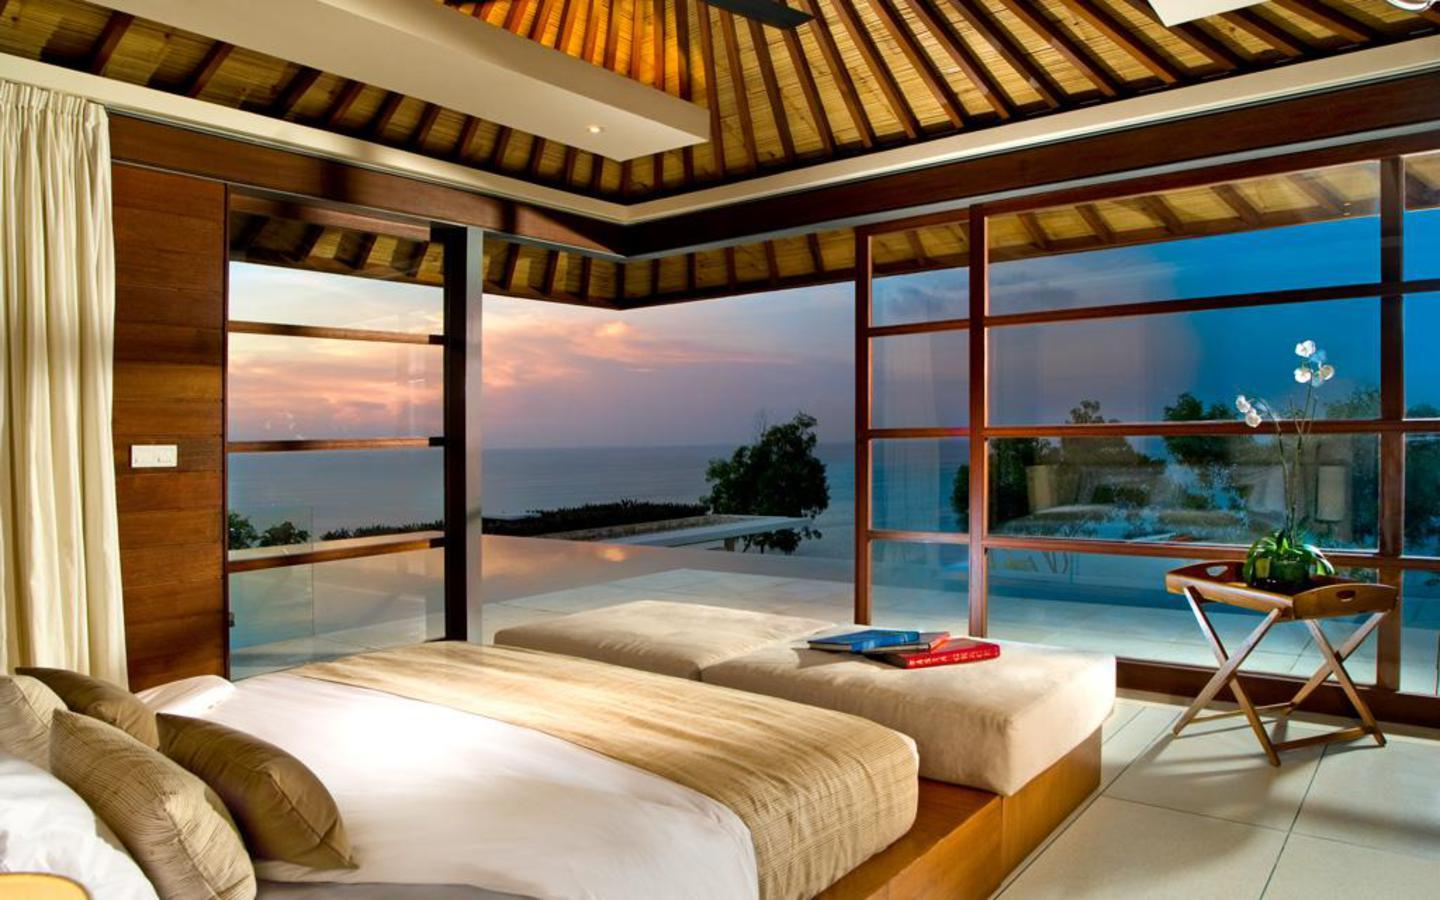 amazing ocean views Bedrooms with Amazing Ocean Views beedroom with the best scenery view house rmWw